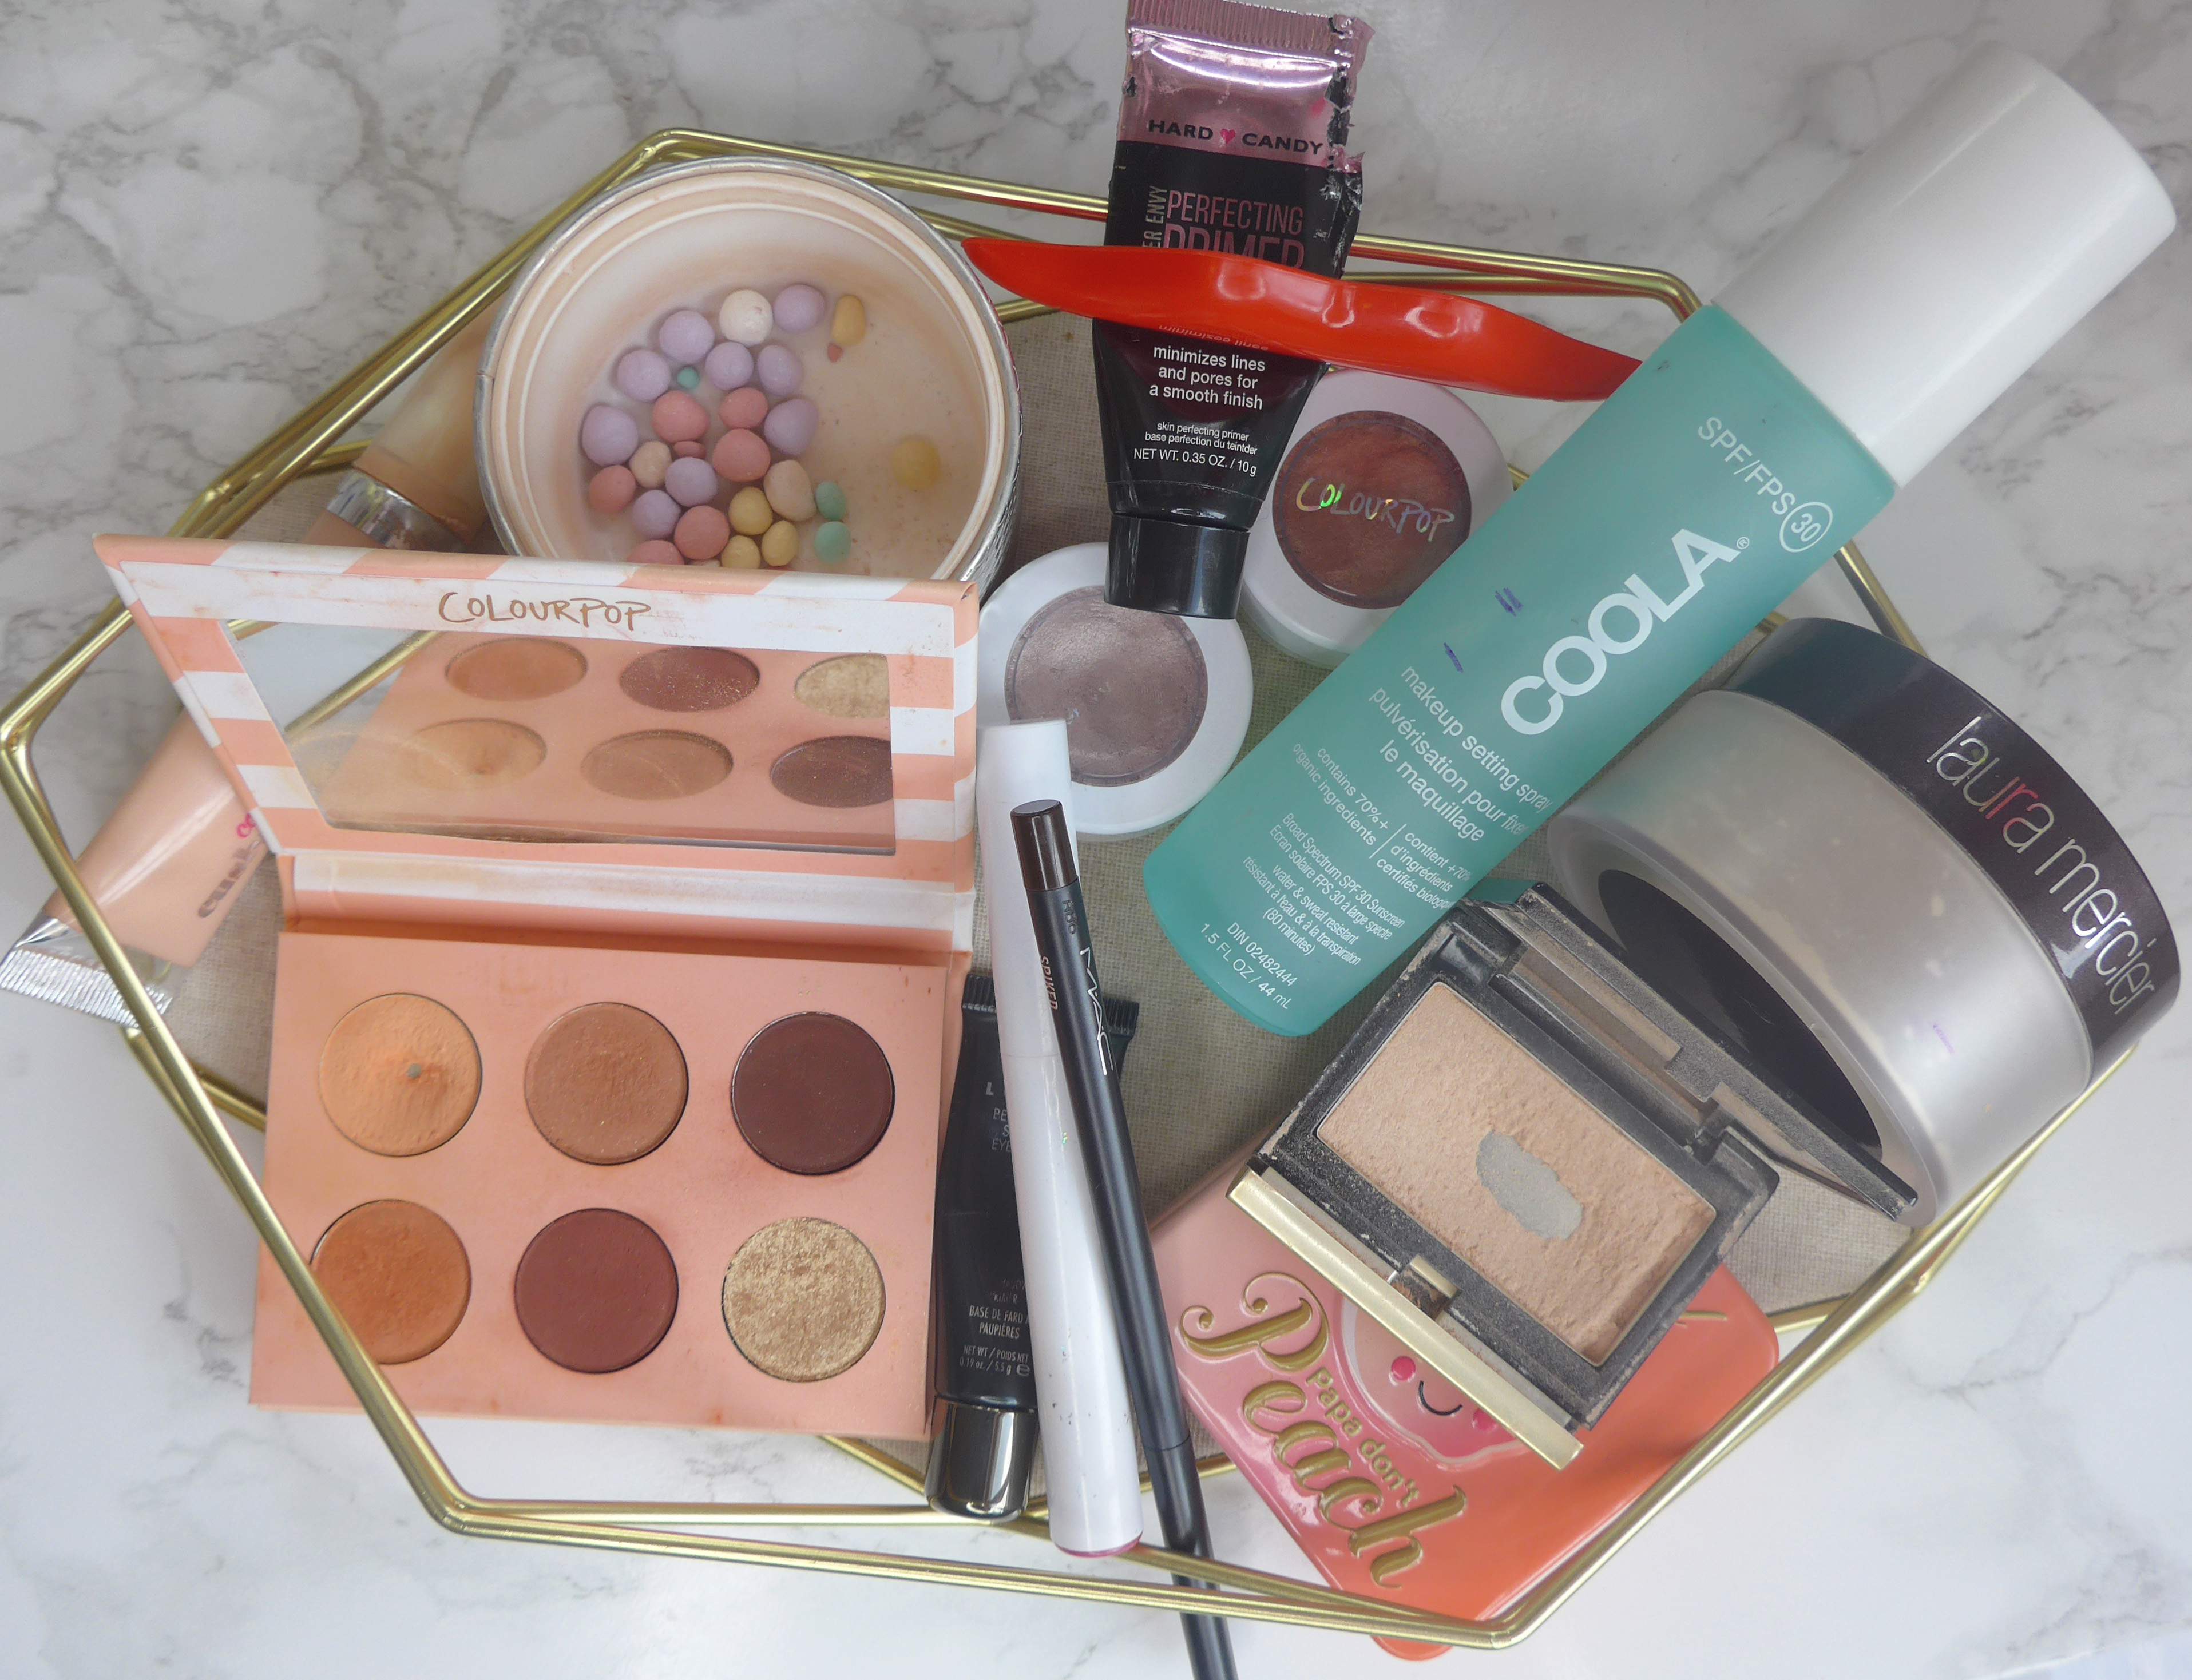 20 in 2020 Project Pan - Update #3